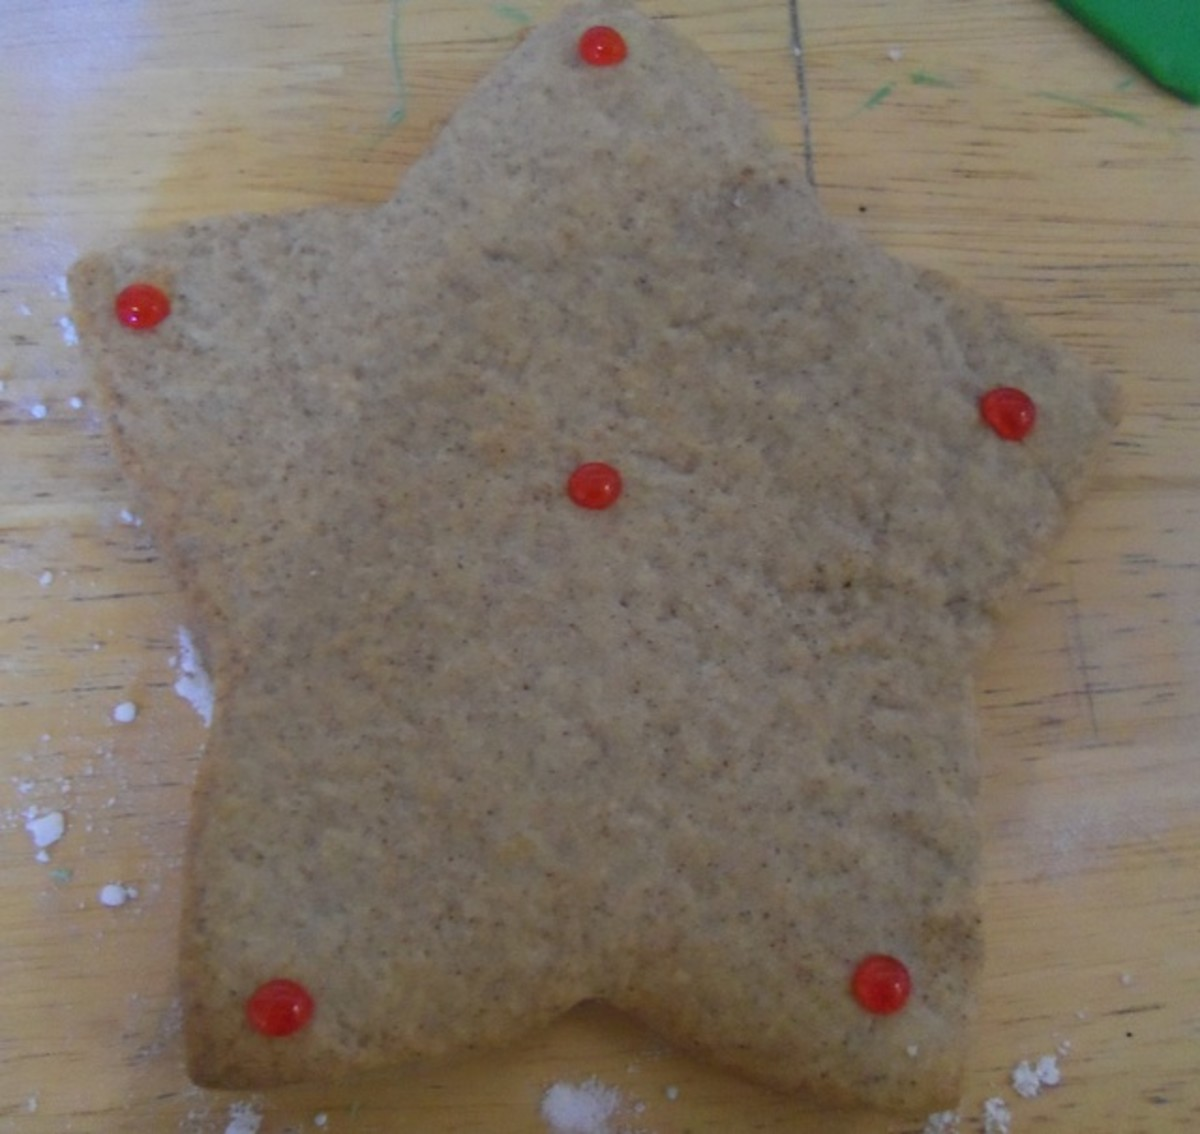 Use decorative piping gel, dotted on the cookie, as an adhesive